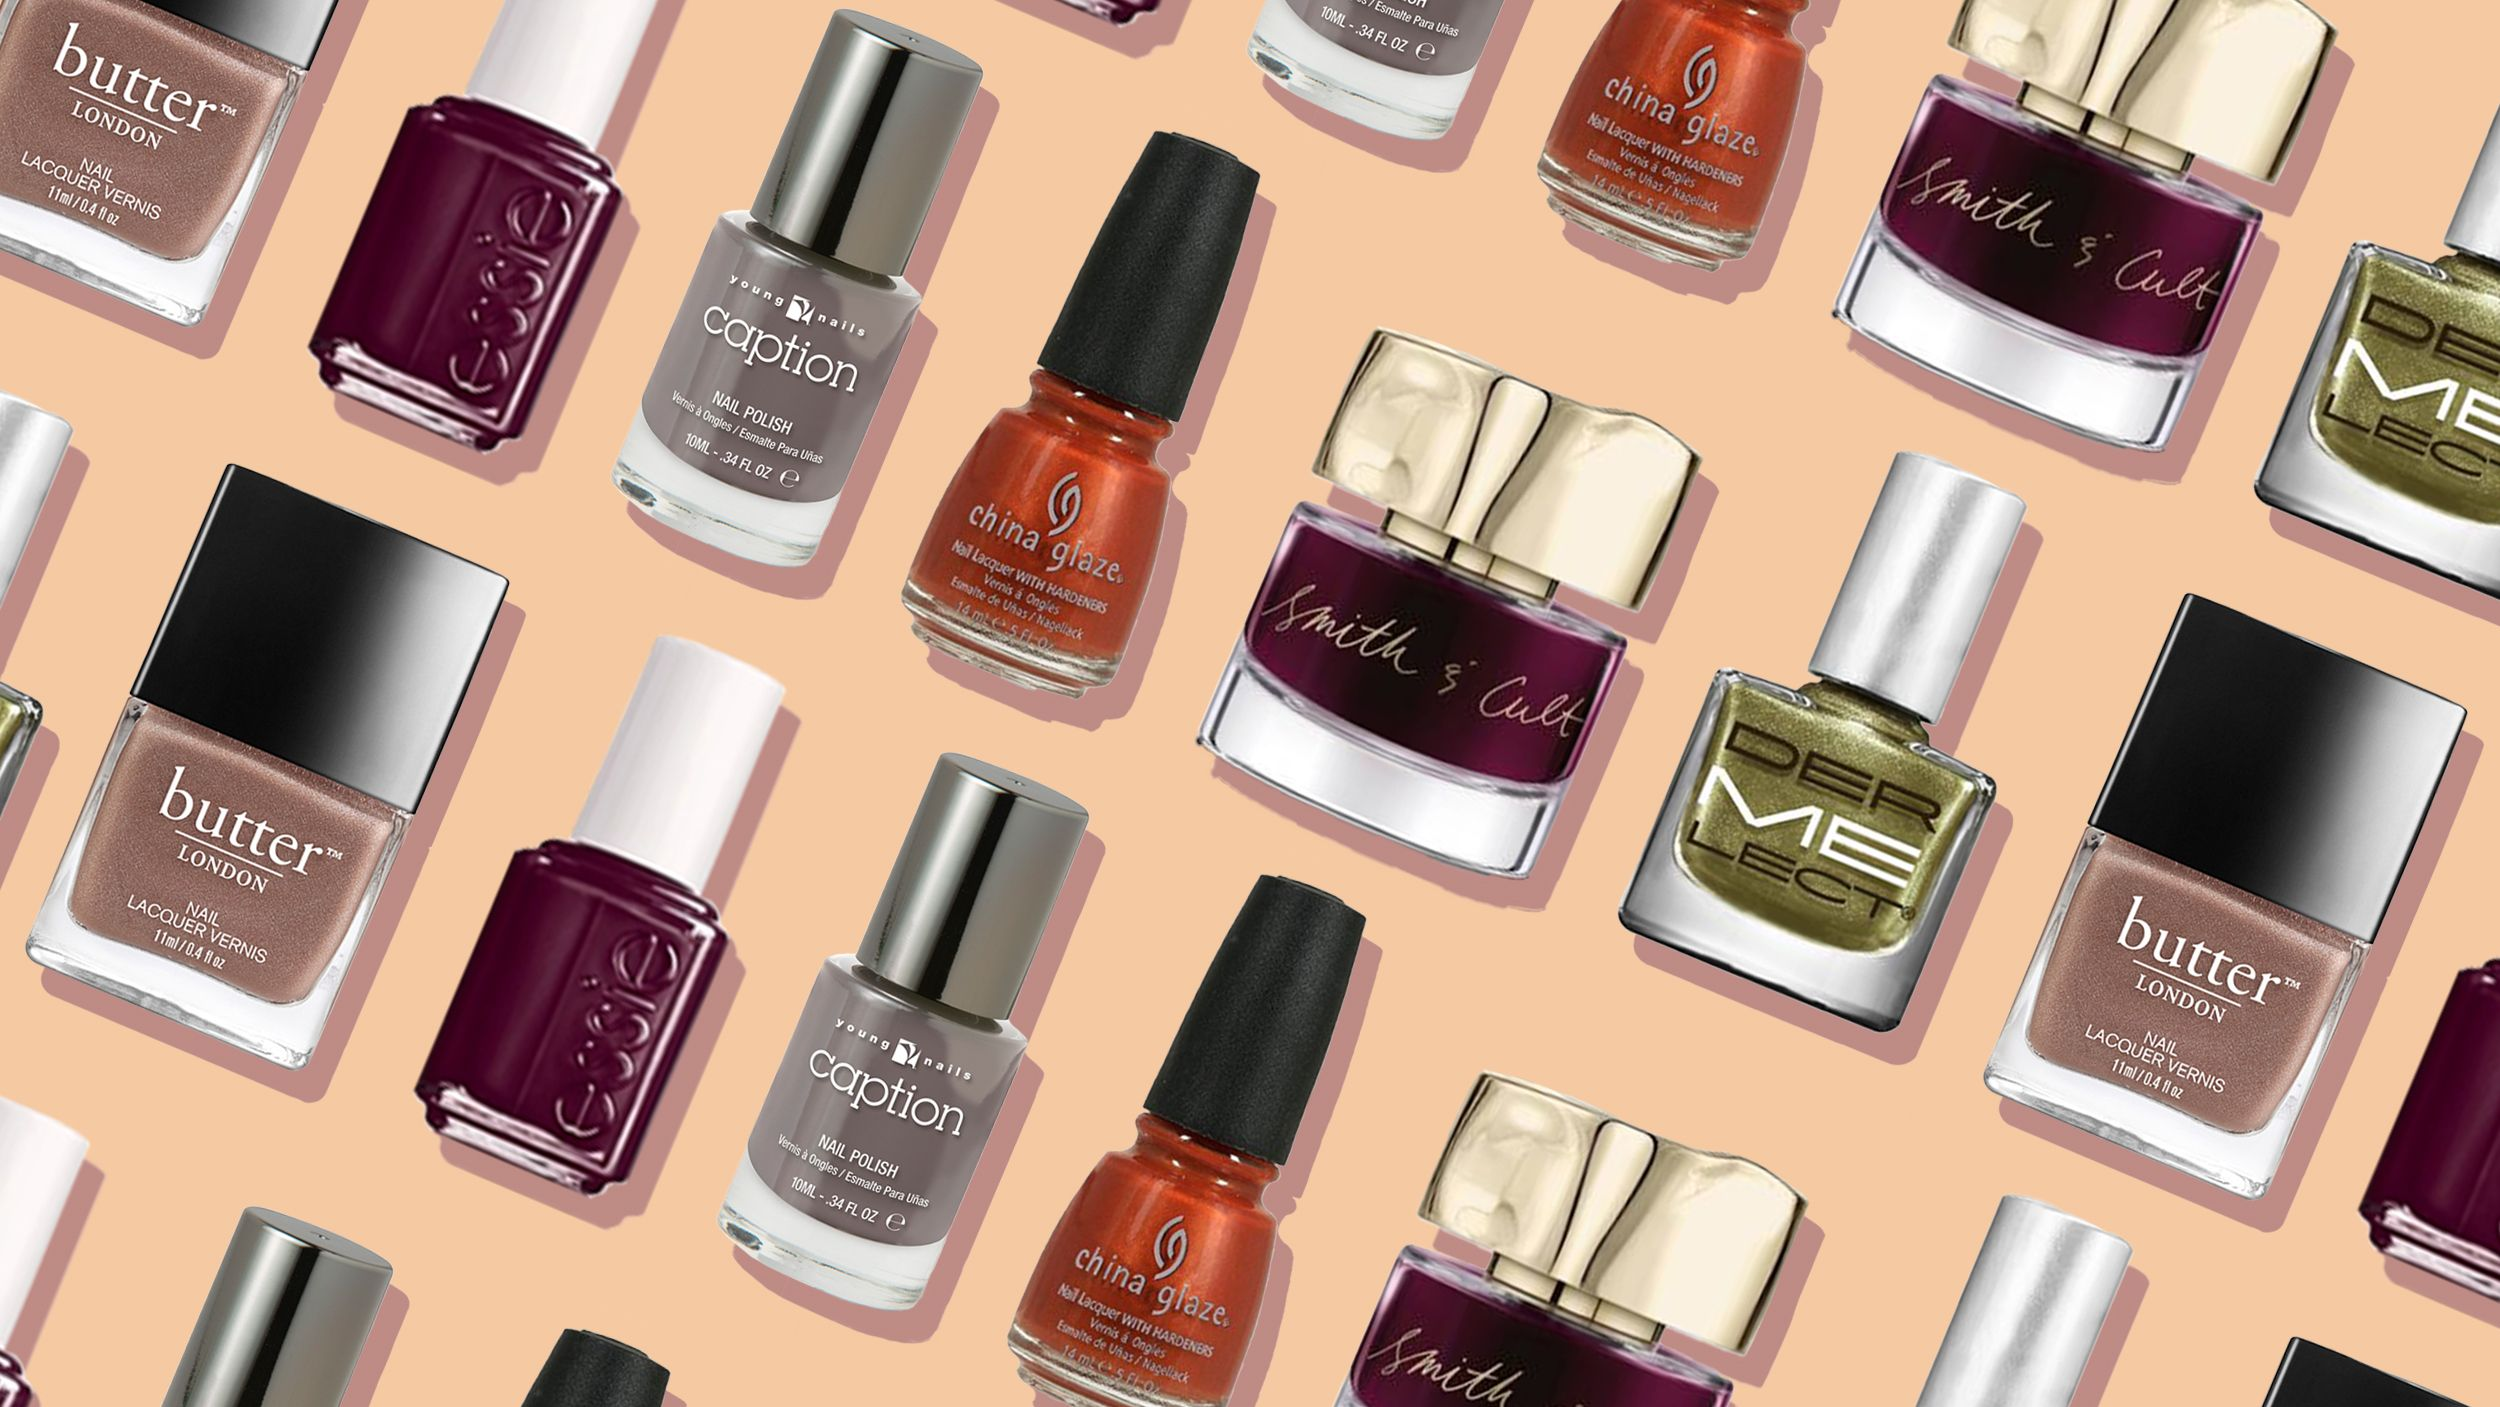 To acquire 4 nail new trendy polishes for fall picture trends